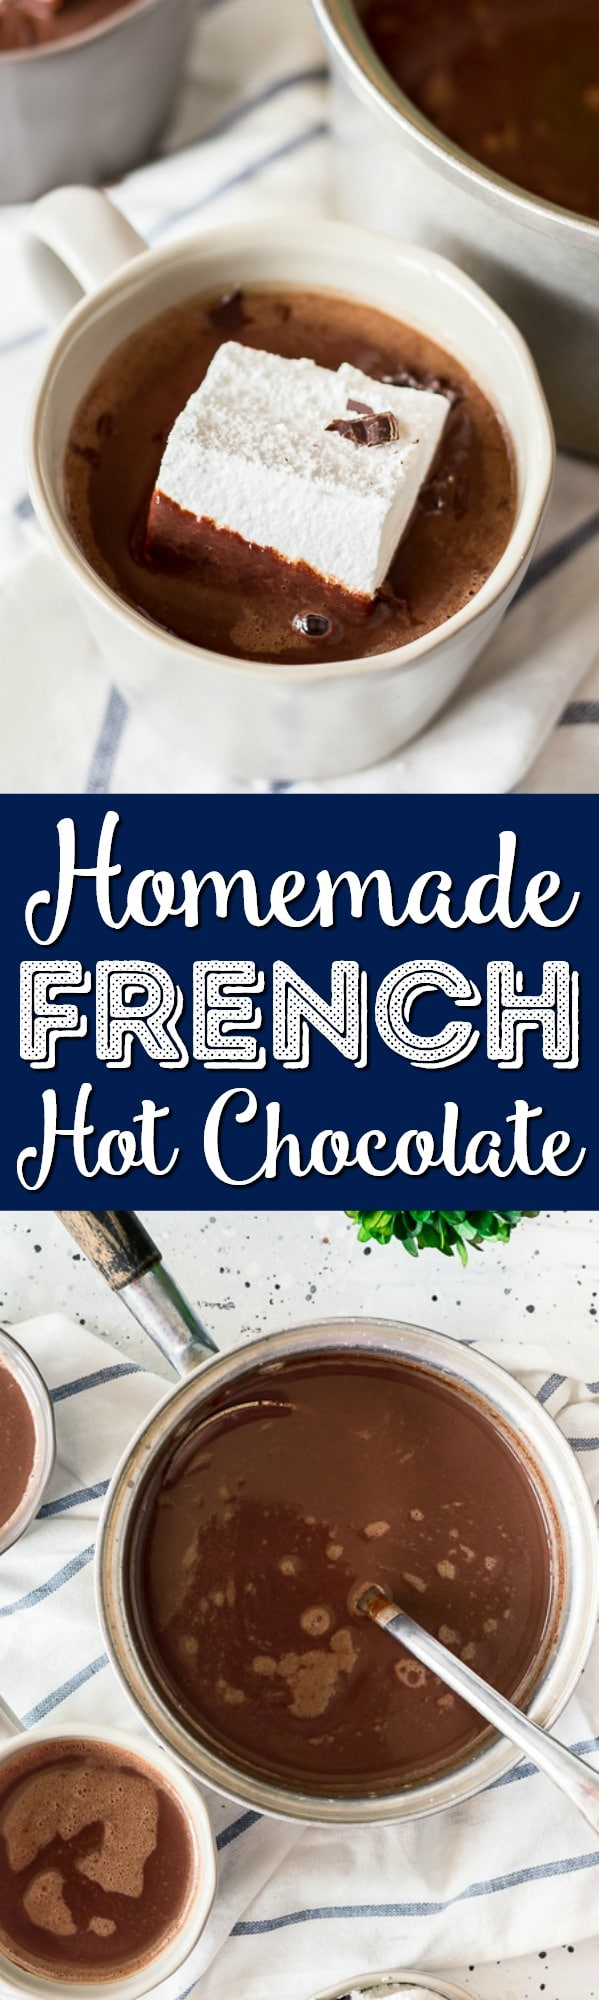 This French Hot Chocolate is rich and creamy and perfect for the holiday season! Made with just a few ingredients, everyone will love this thick and chocolaty winter drink!